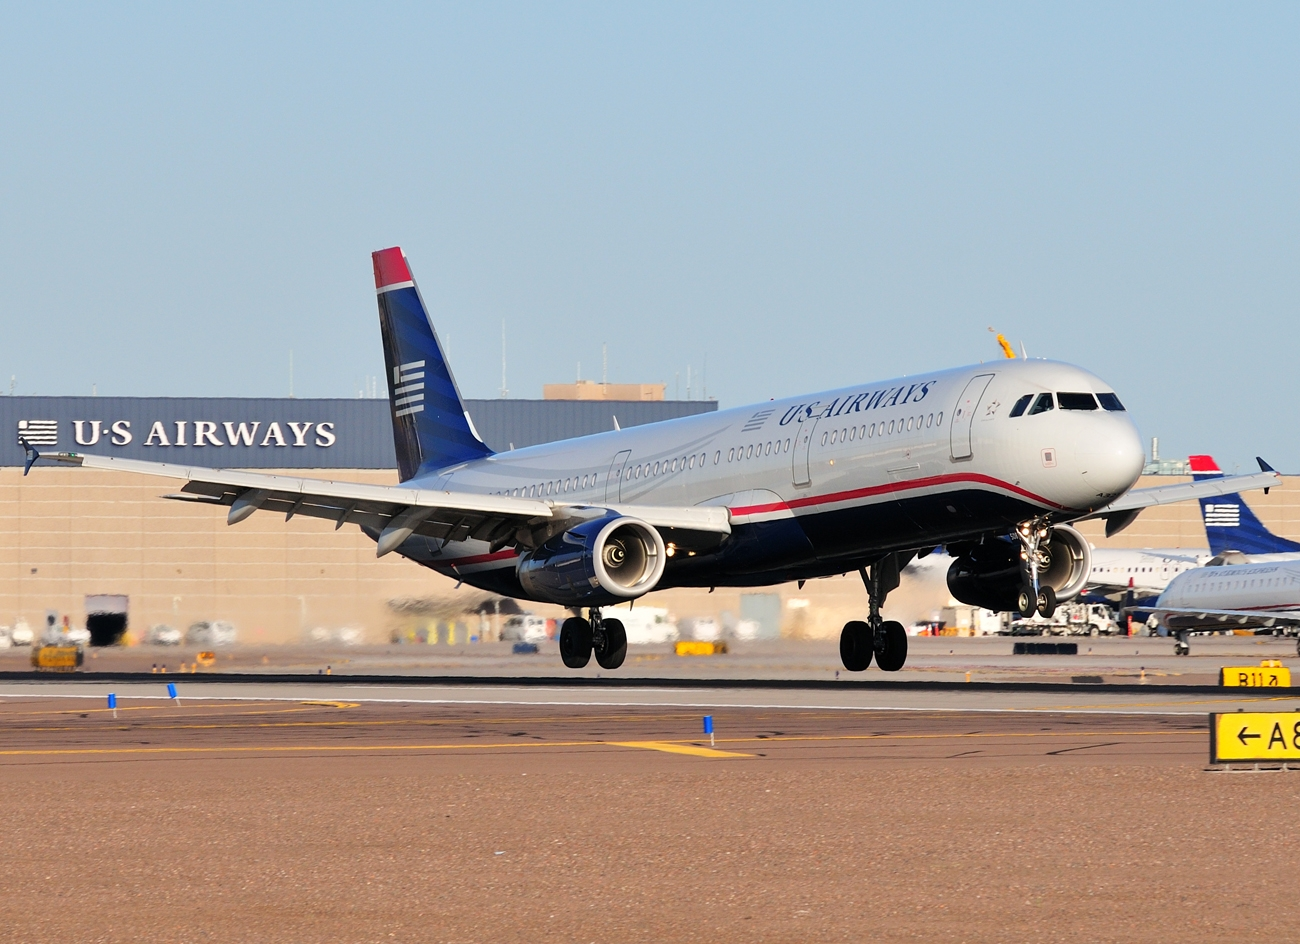 Airbus A321 200 of US Airways While Rotating Takeoff Aircraft 1300x944